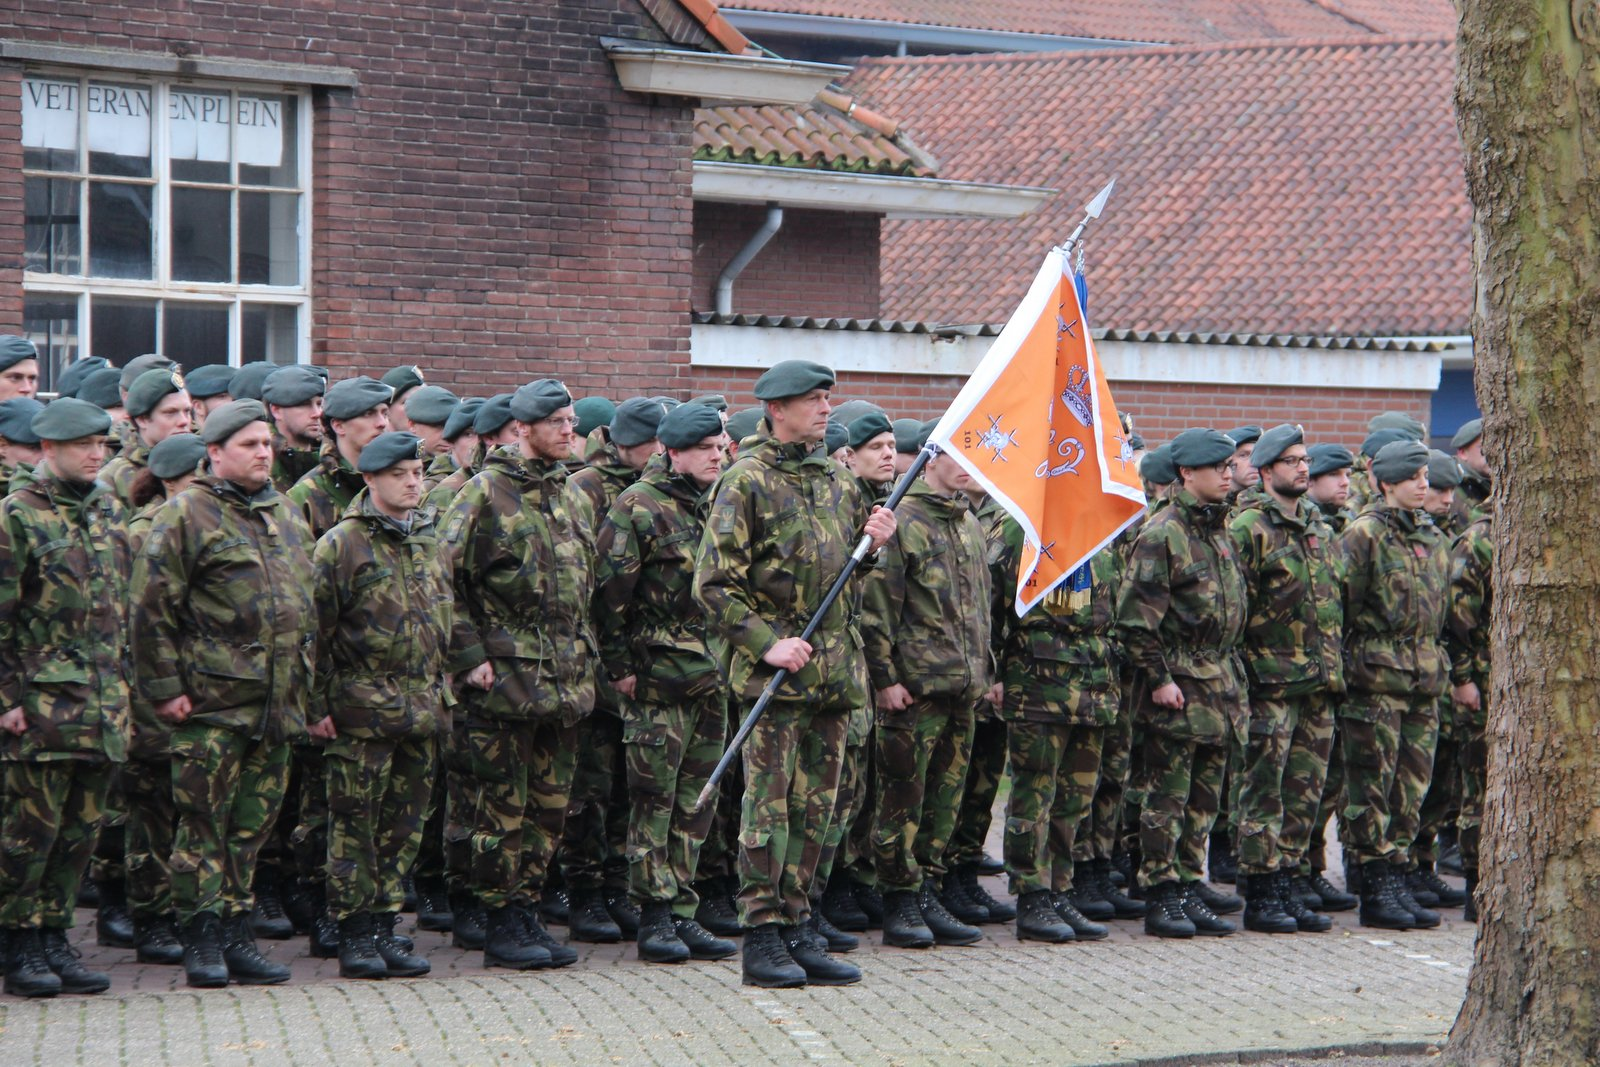 regiment_142_jaar_20160219_1940213361